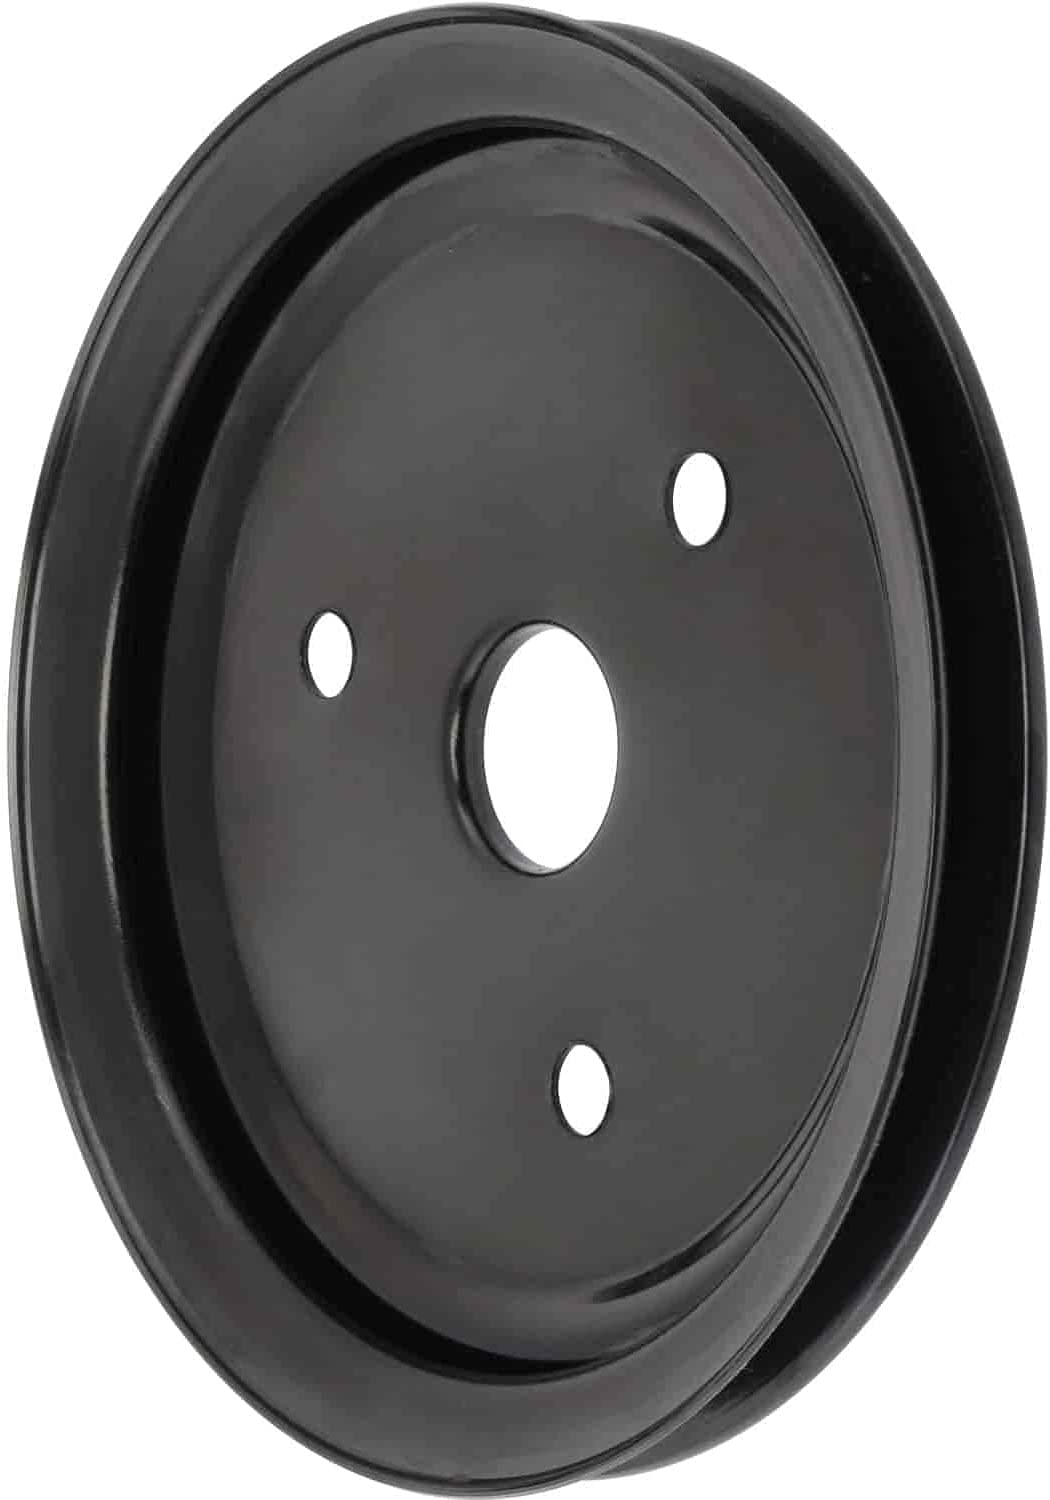 Max 58% OFF JEGS 514098 Selling and selling Crankshaft Pulley for Small Block Chevy